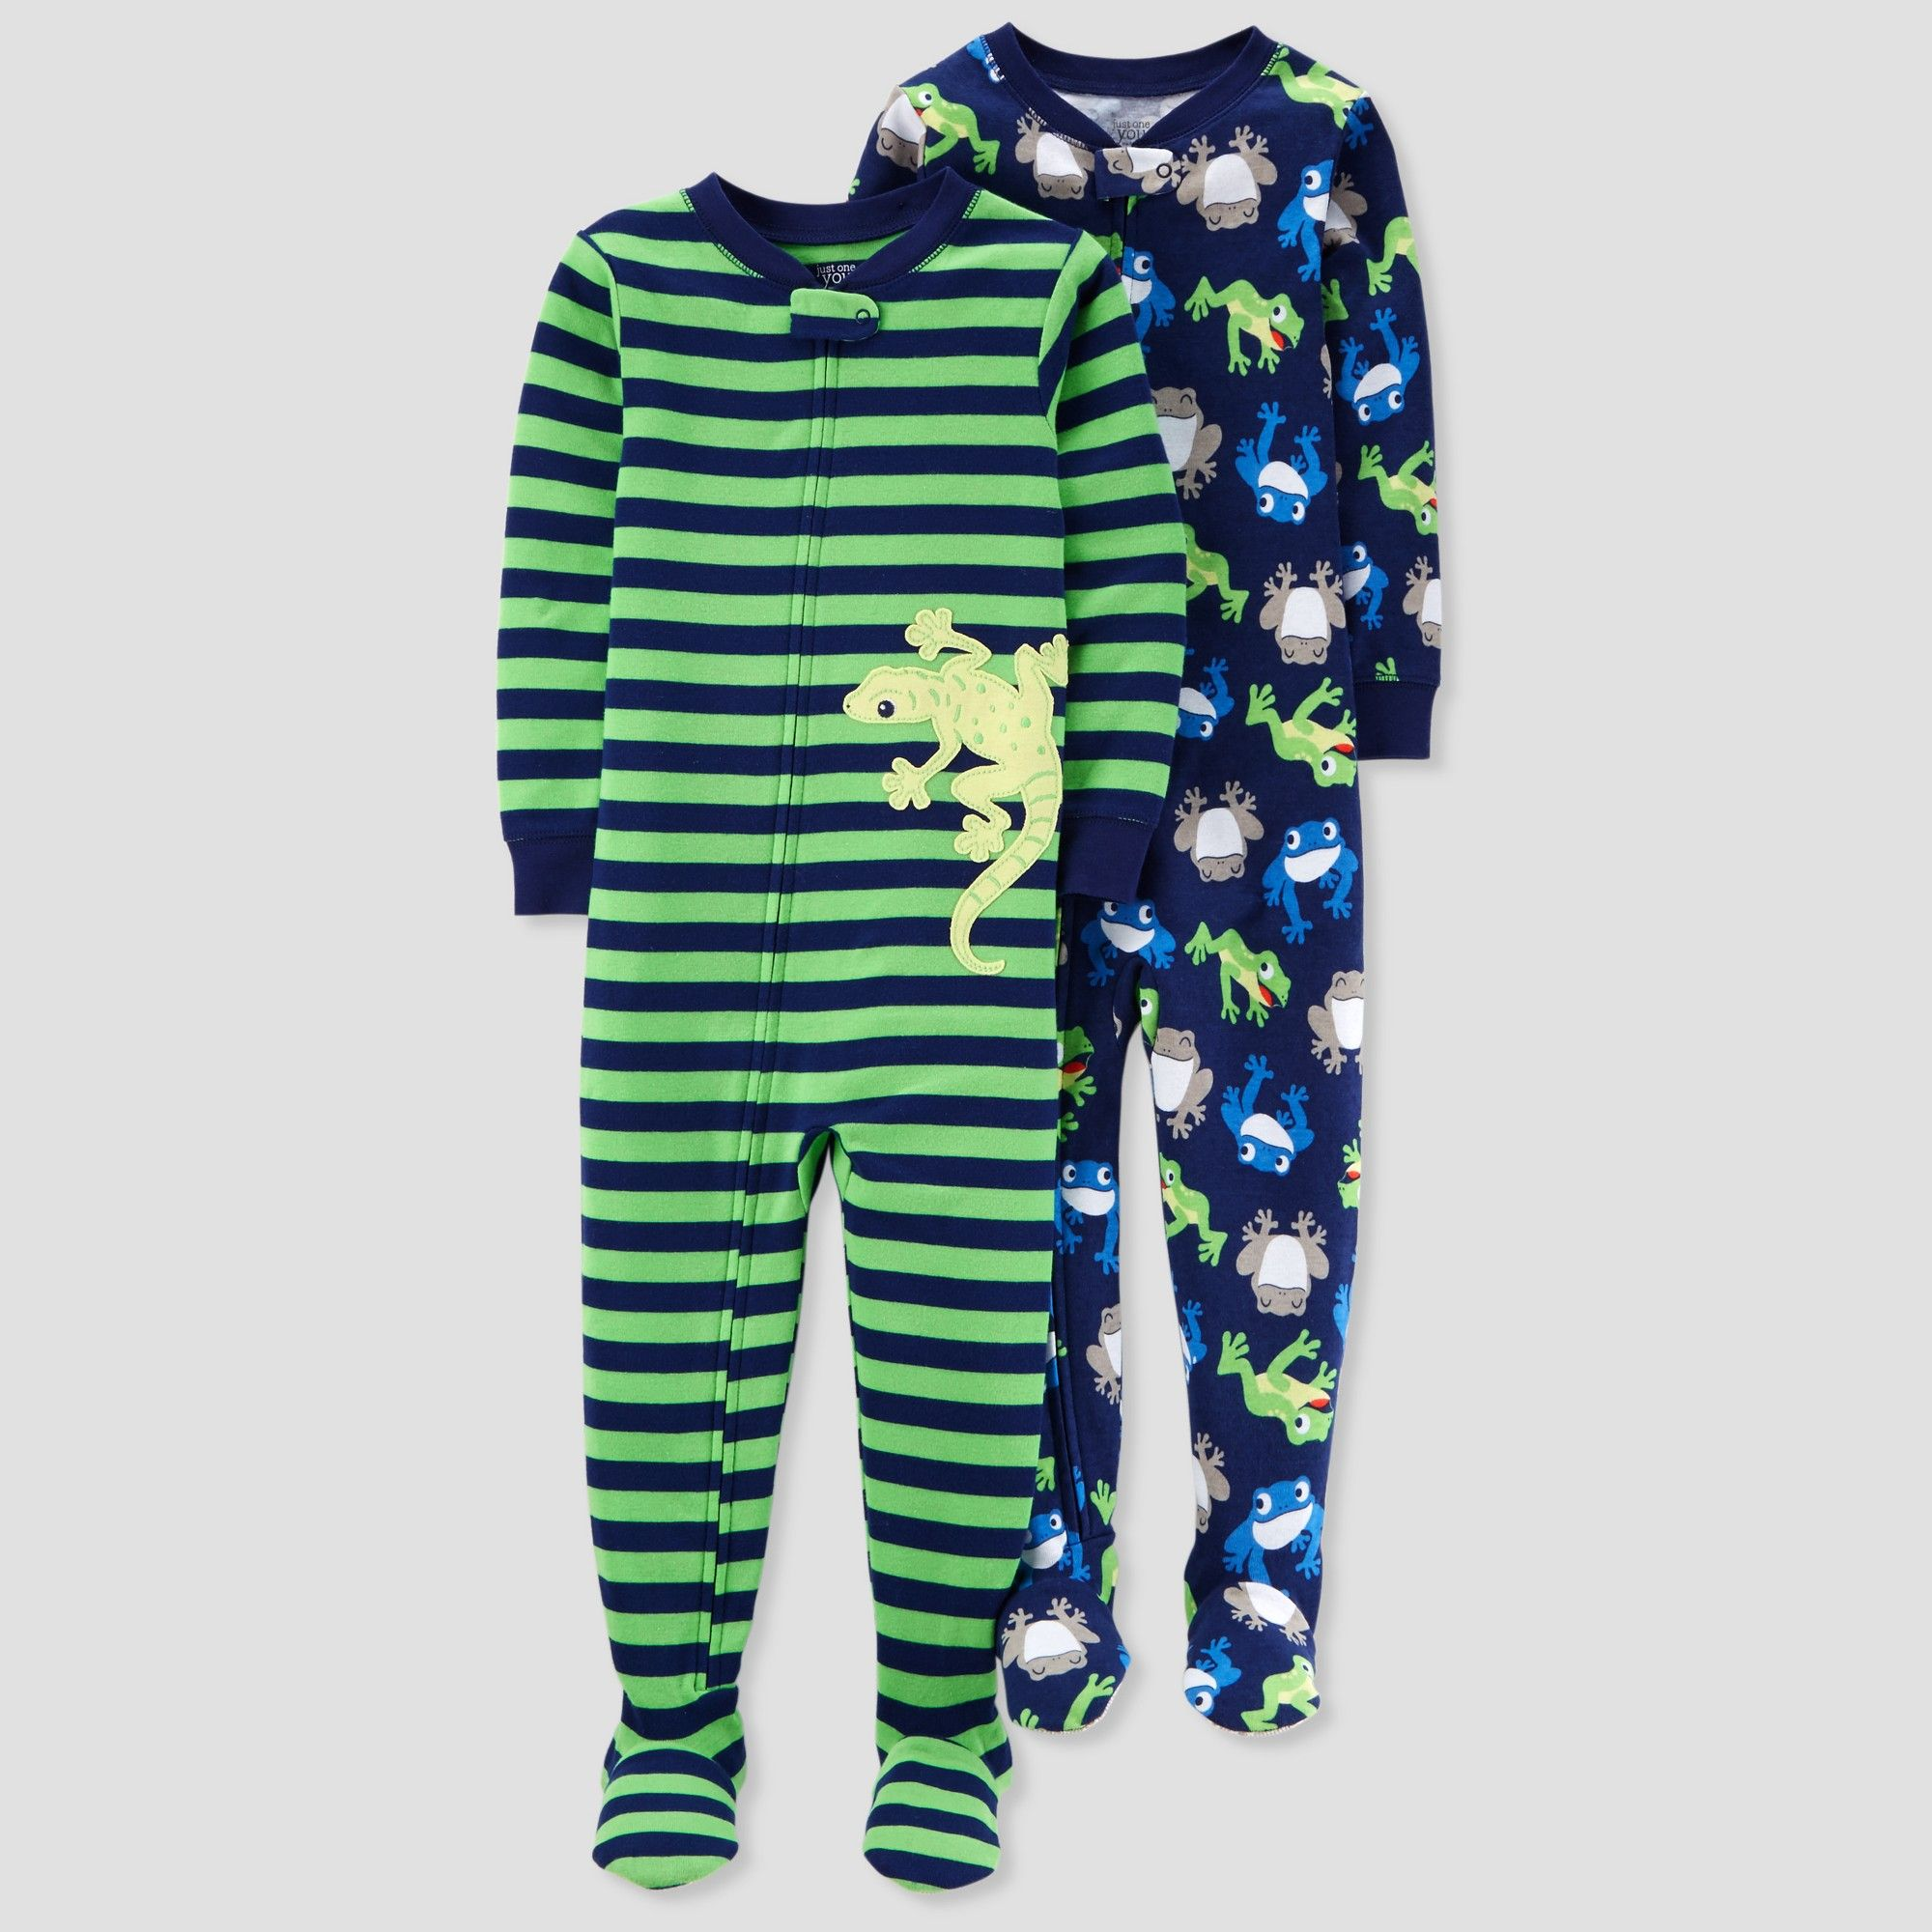 Baby Boys  2pk Lizard Stripe Footed Pajama Set - Just One You made by  carter s Green 18M 15fca76b4